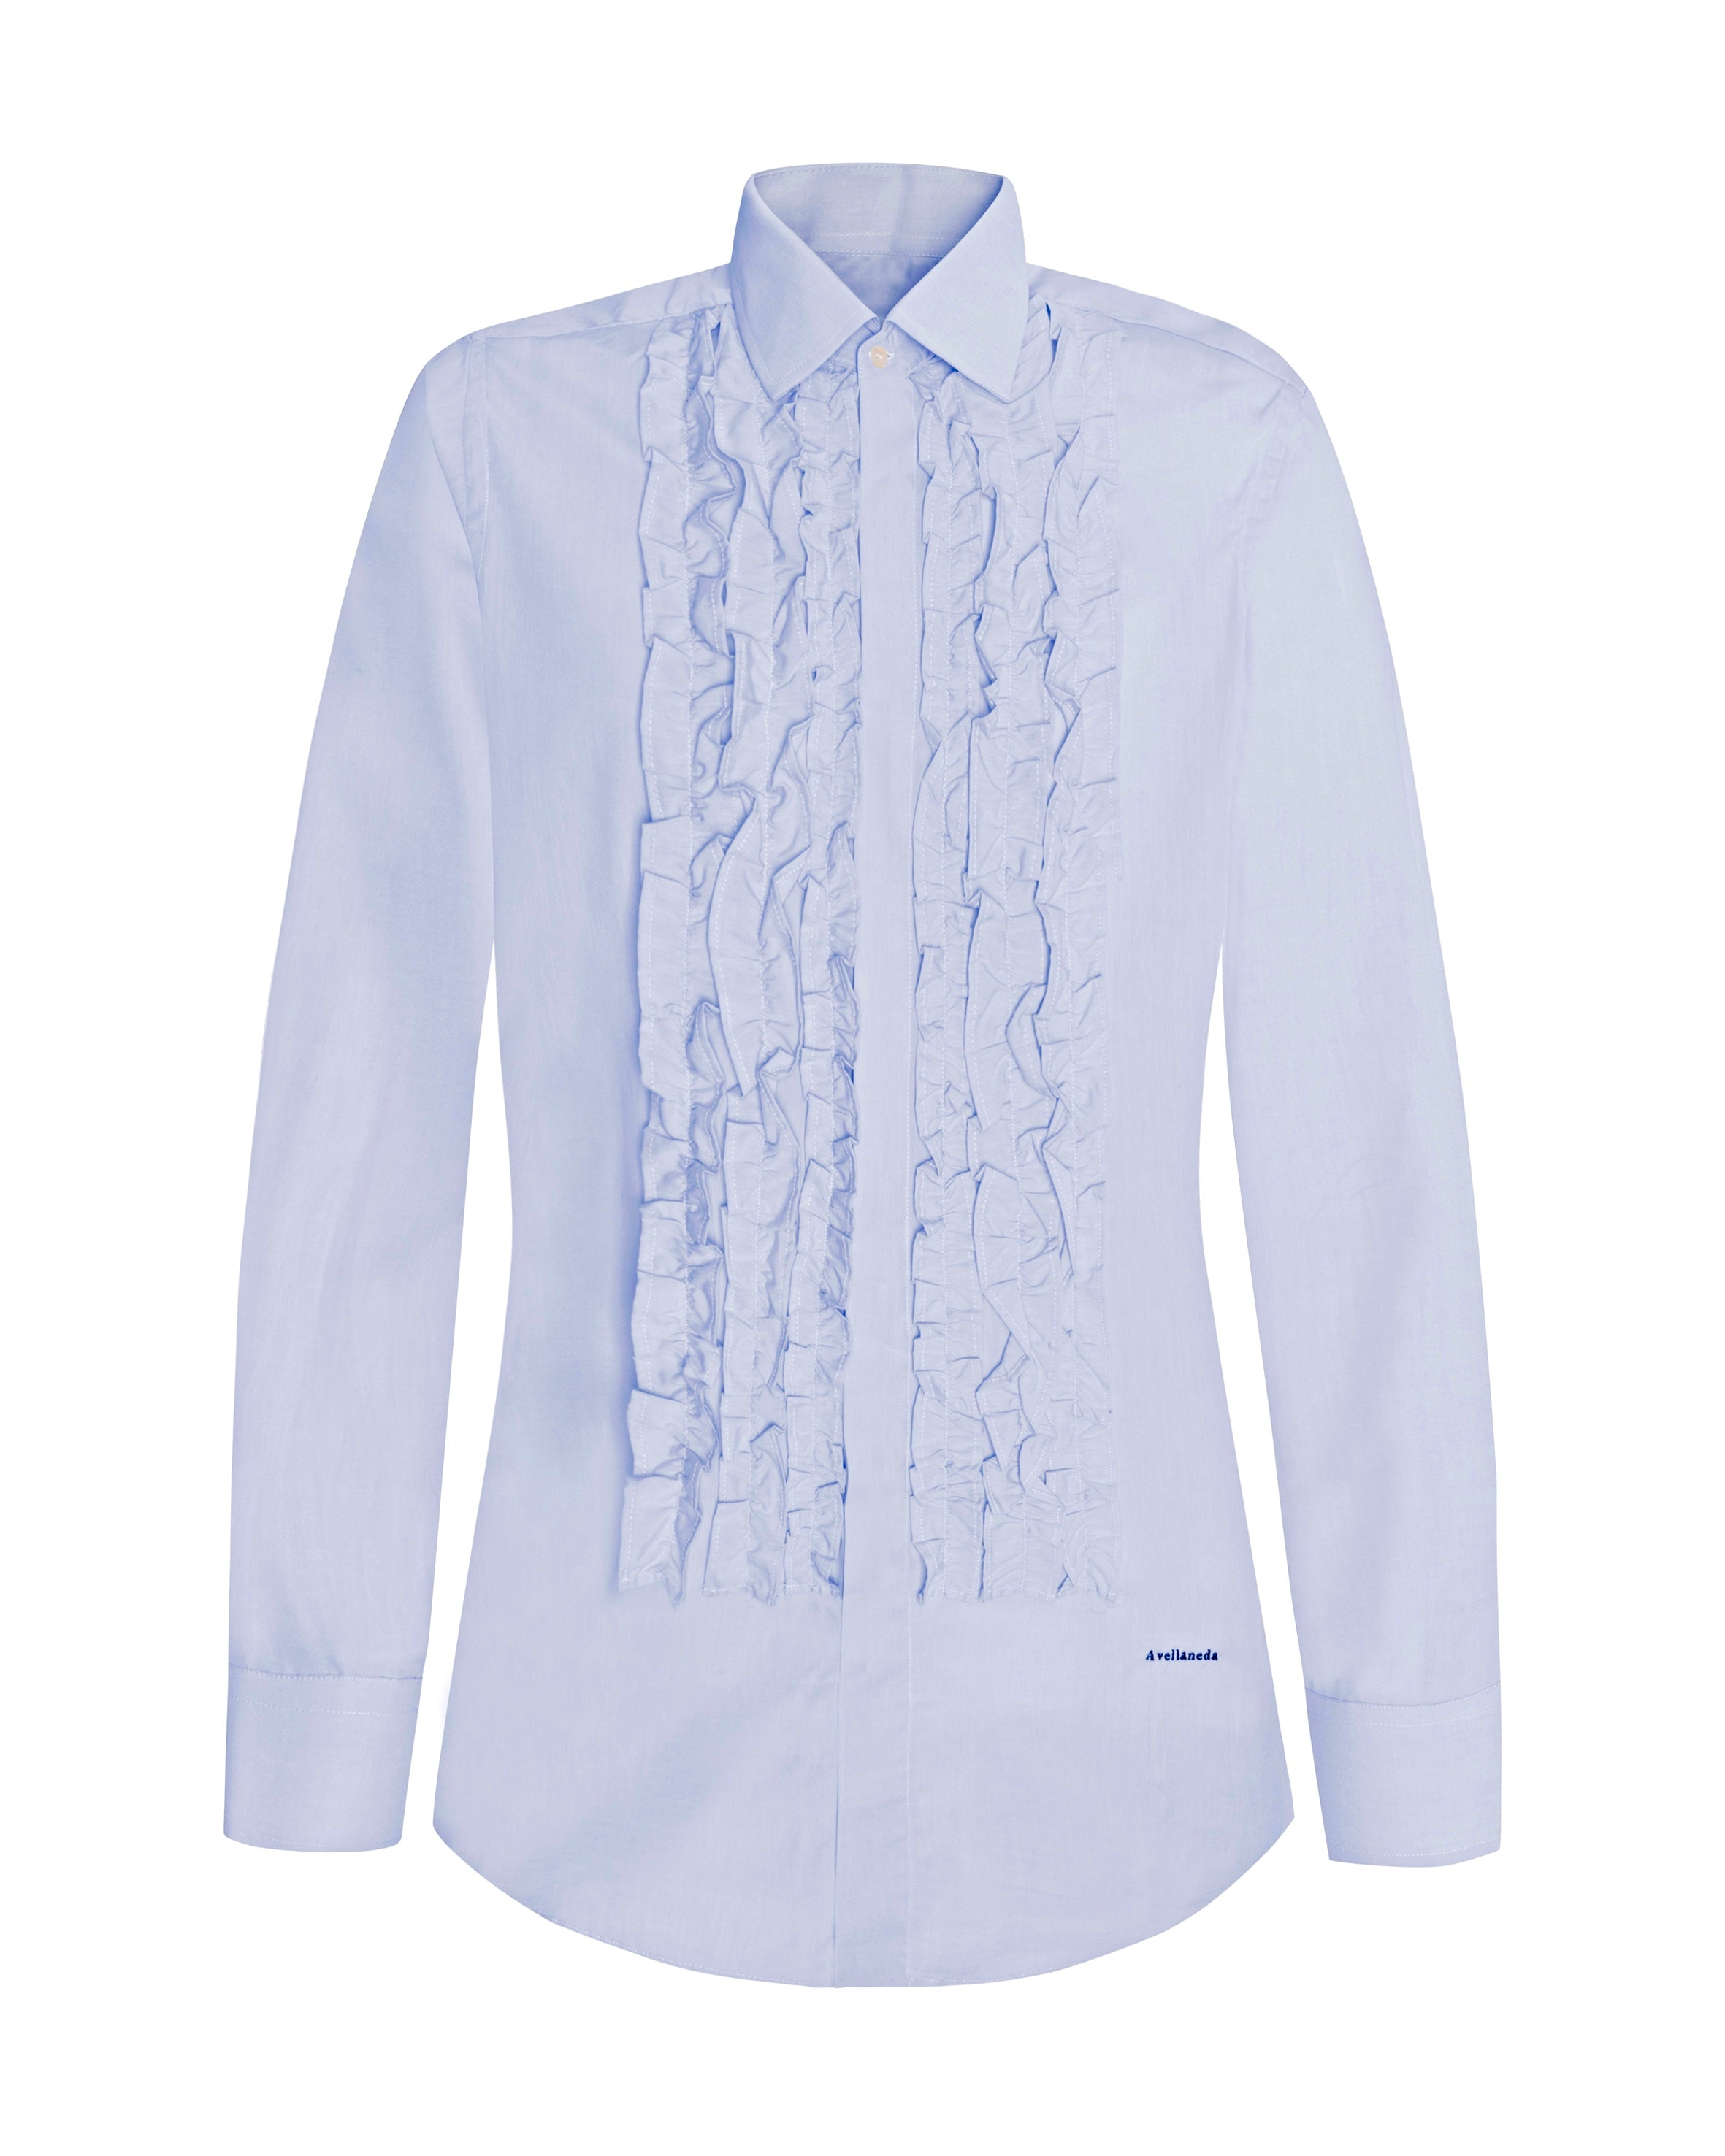 WOMEN'S MULTI-RUFFLED BLUE SHIRT